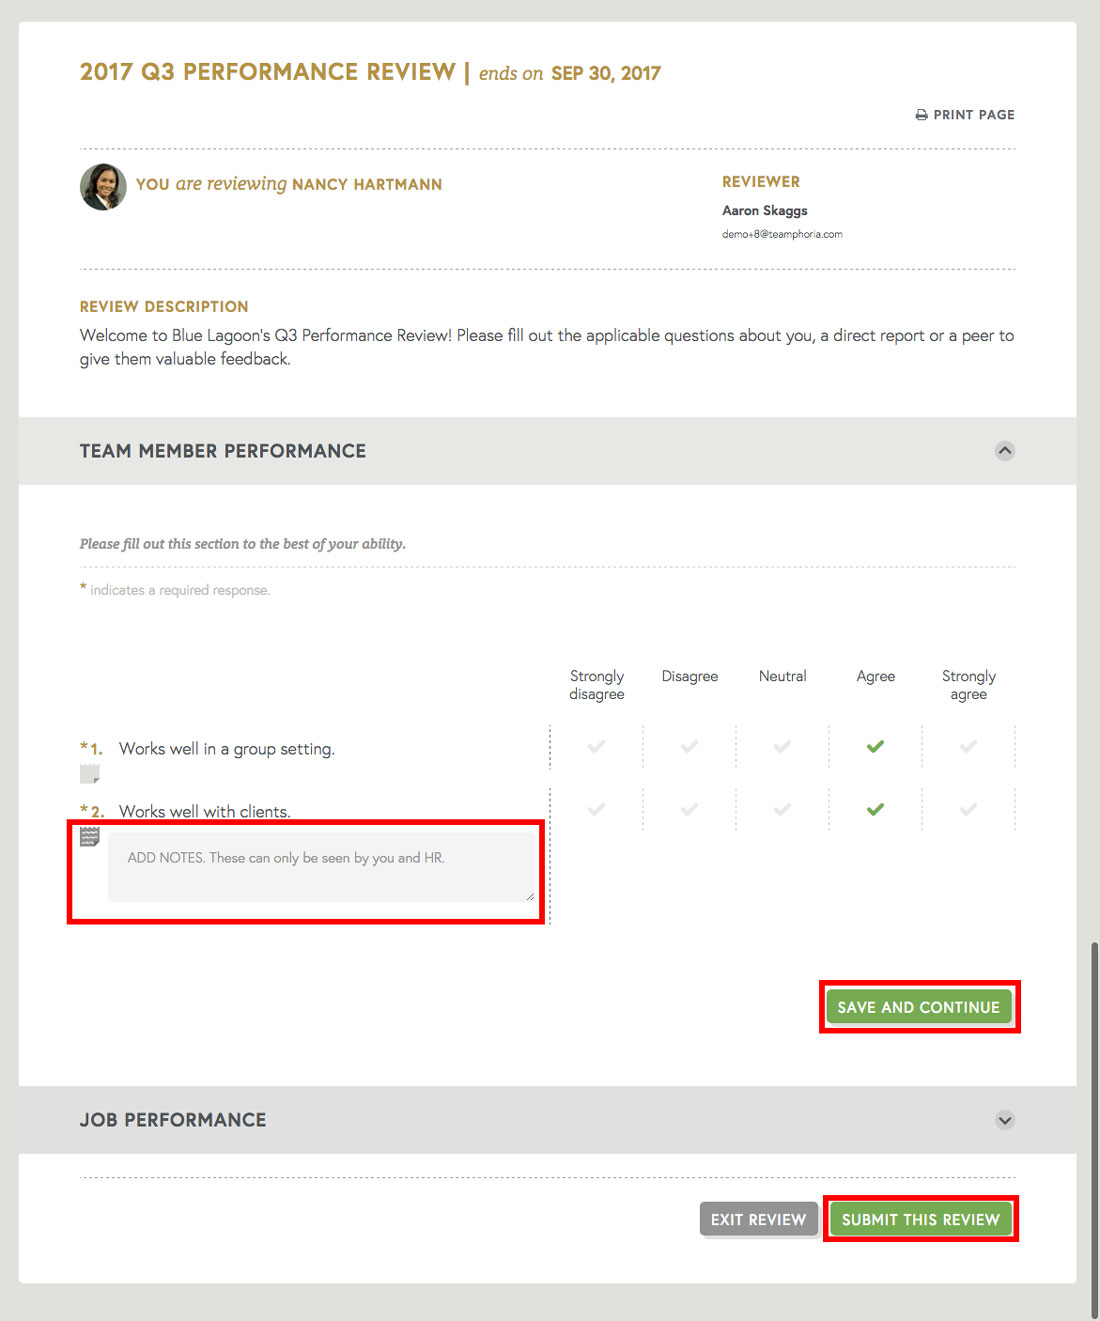 employee review template for managers to take